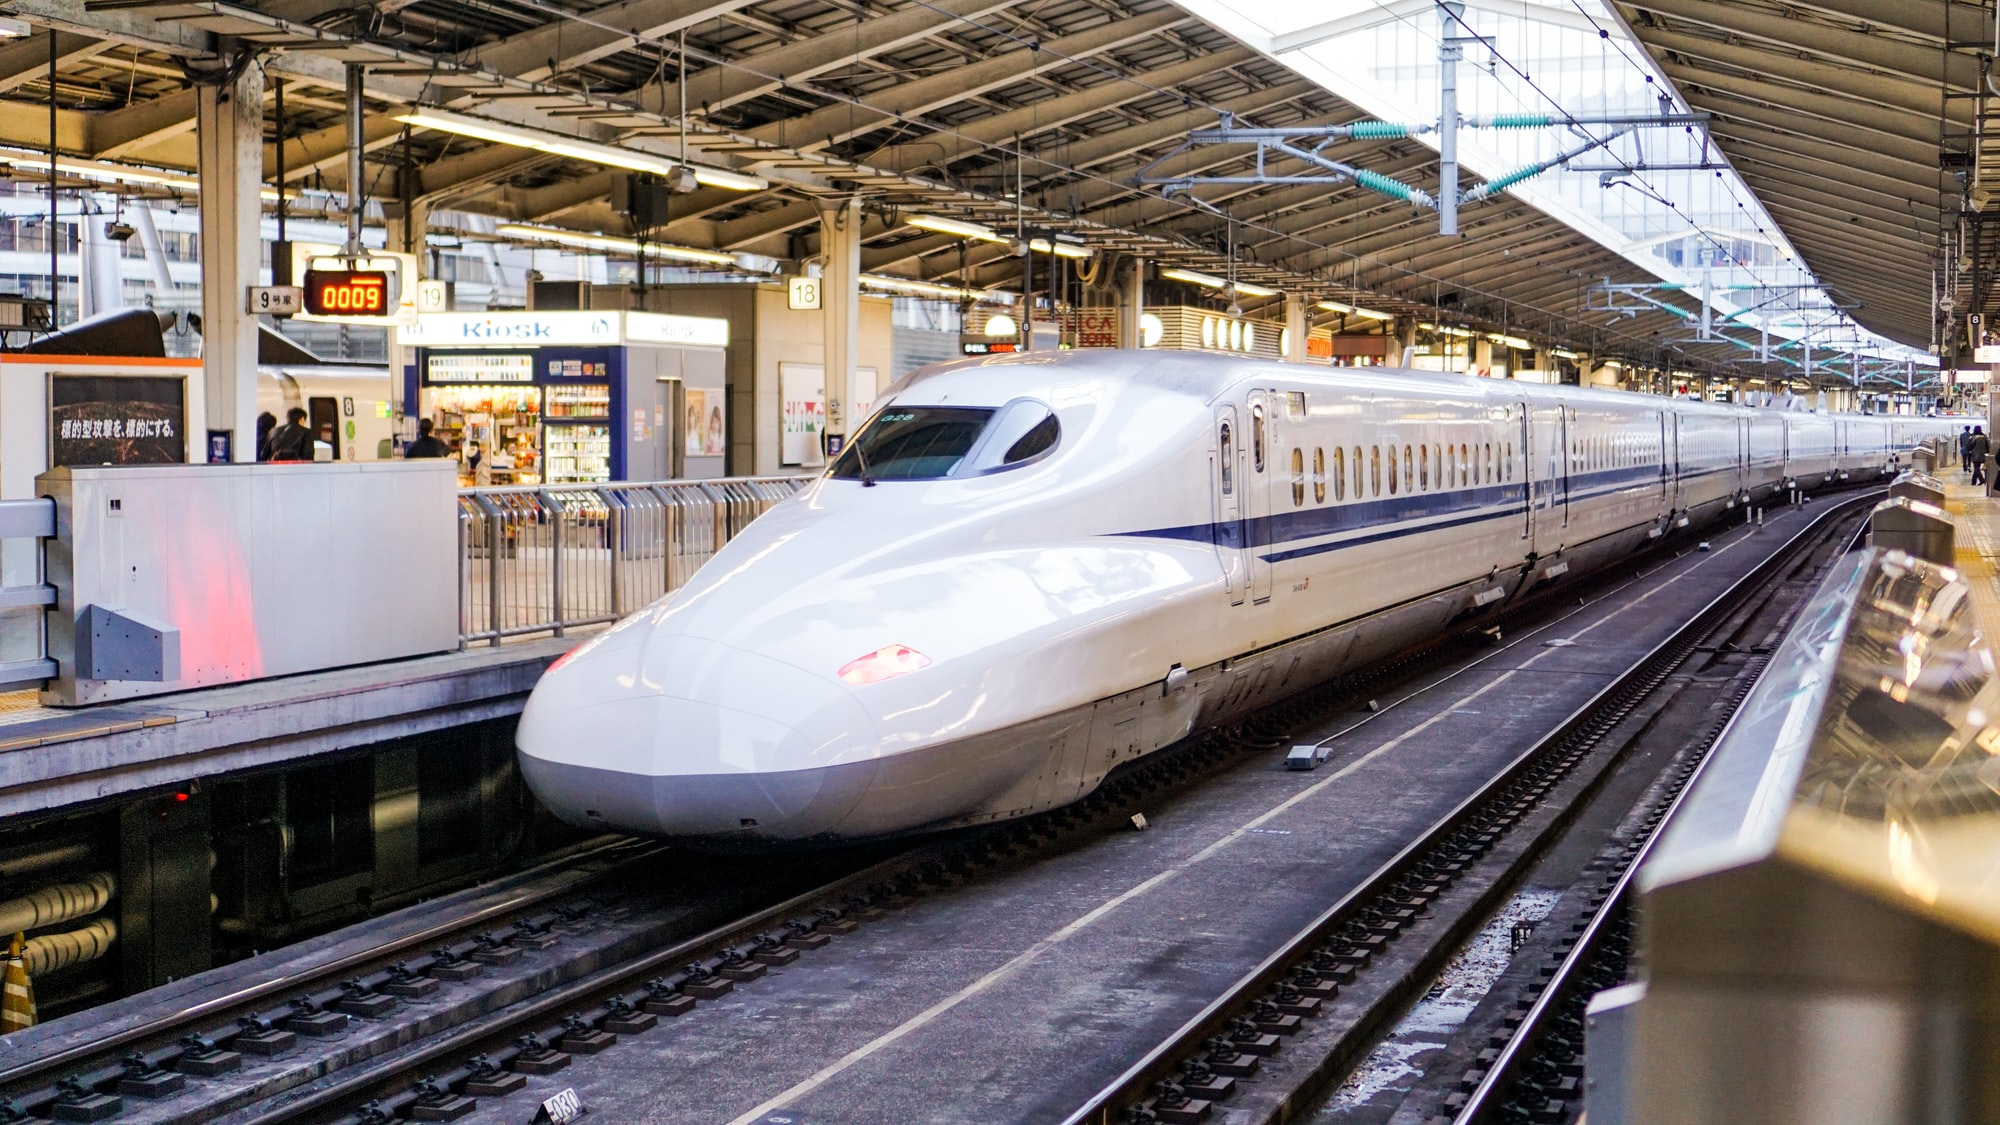 Me and my wife agreed that if this is our only trip to Japan in our lifetime, one of the thing that we should do is trying out Shinkansen from Tokyo to Kyoto. It was quite pricey but it was worth it. I managed to took a picture of it when we're waiting for our Shinkansen to come.